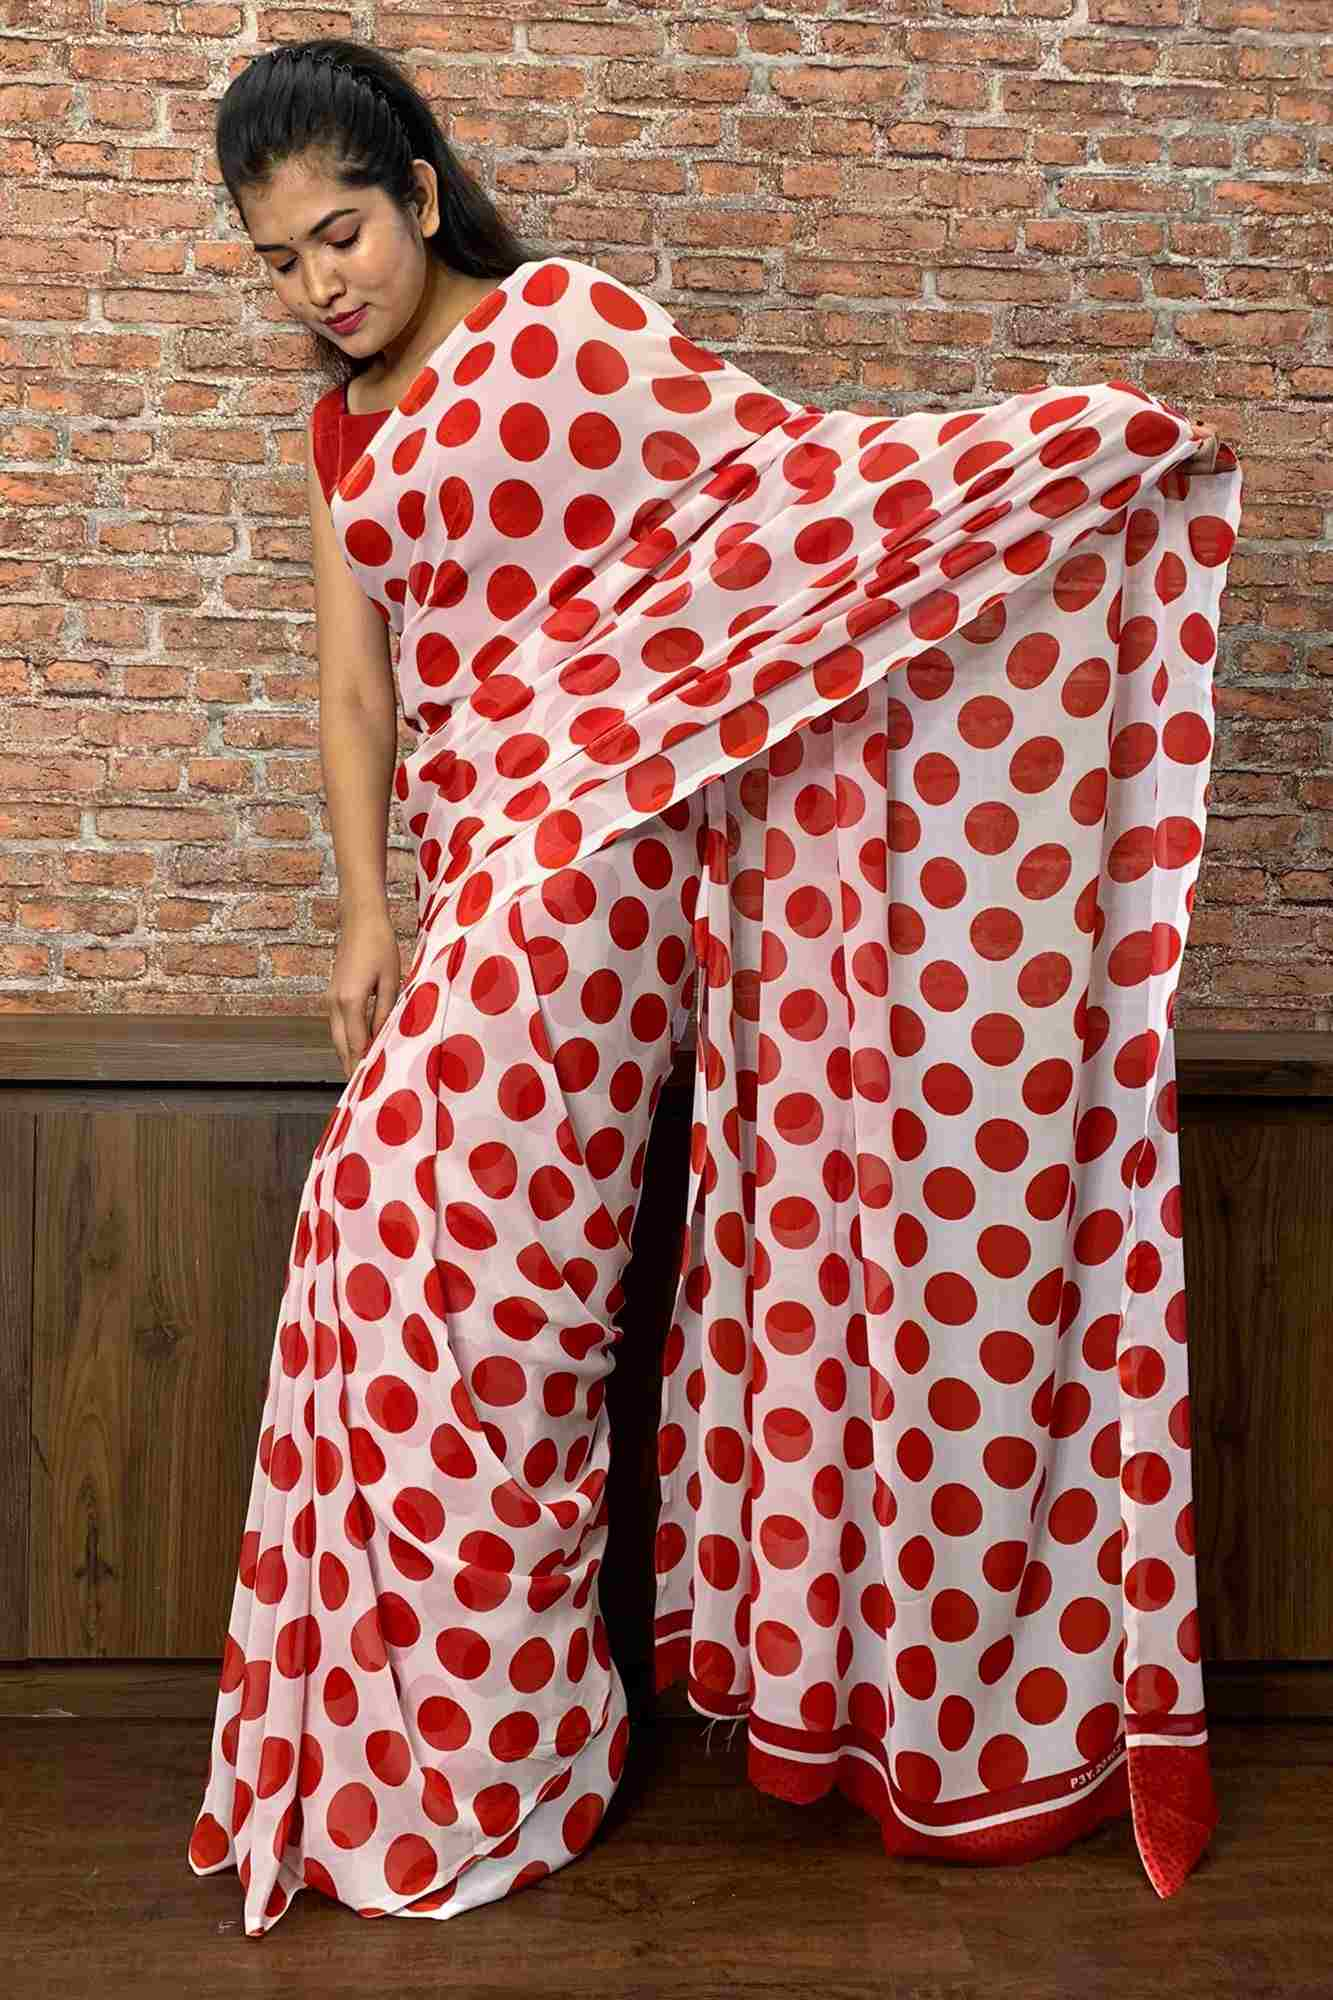 Red and white polka dot wrap in 1 minute saree